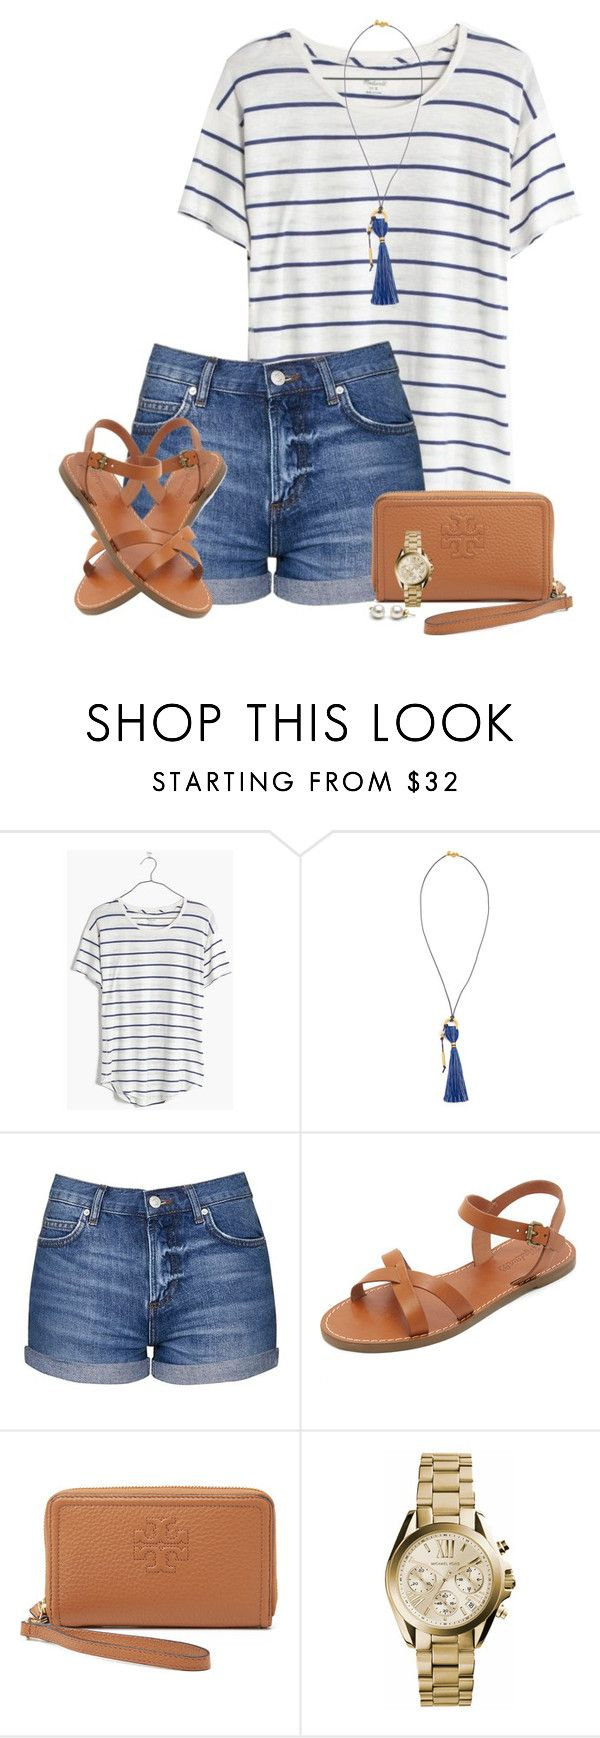 """""""Striped tee, tassel necklace and sandals"""" by steffiestaffie ❤ liked on Polyvore featuring Madewell, Topshop, Tory Burch and Michael Kors"""